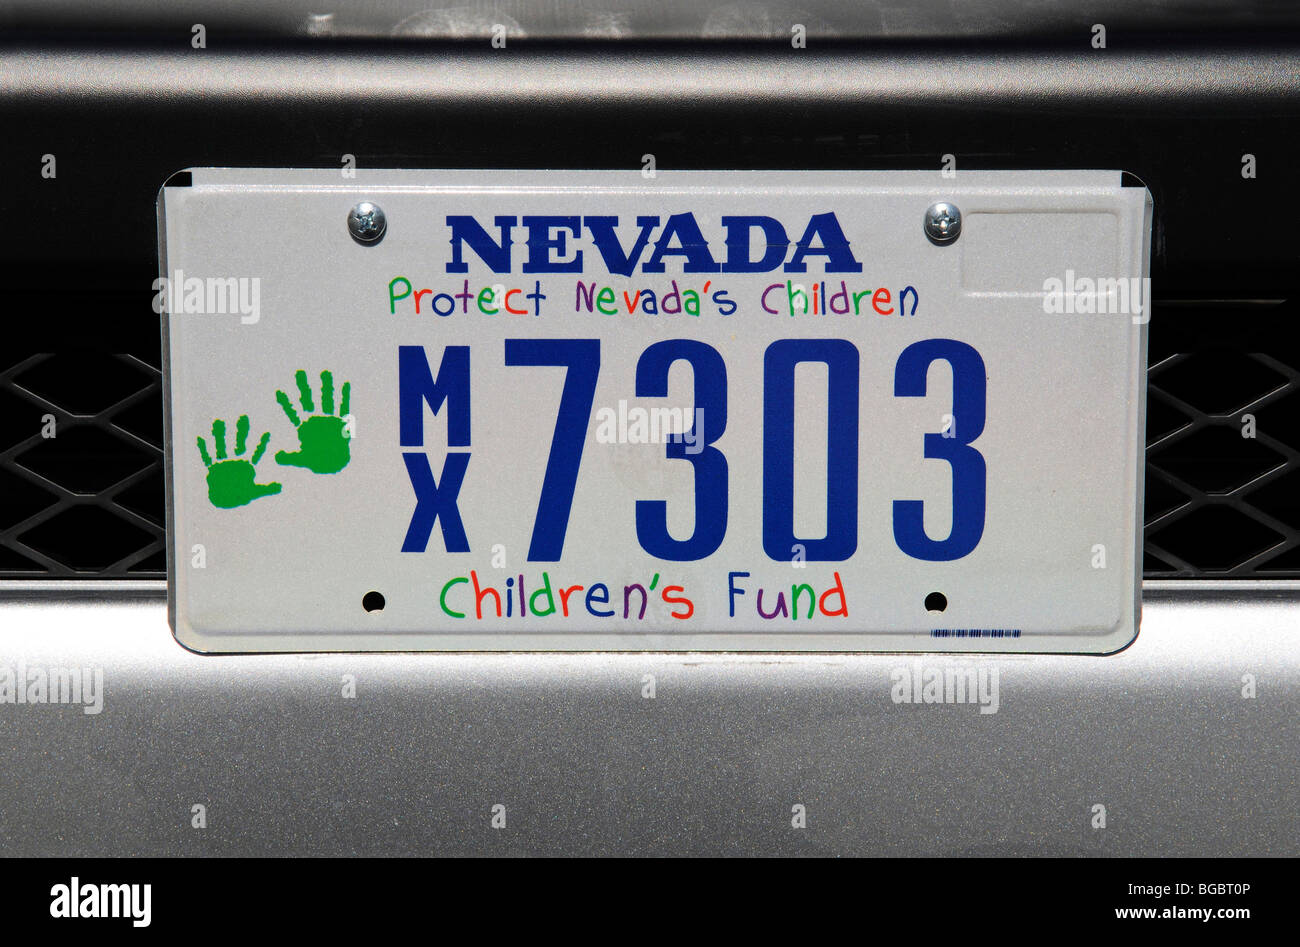 Number plate, license plate, Las Vegas, Nevada, USA - Stock Image